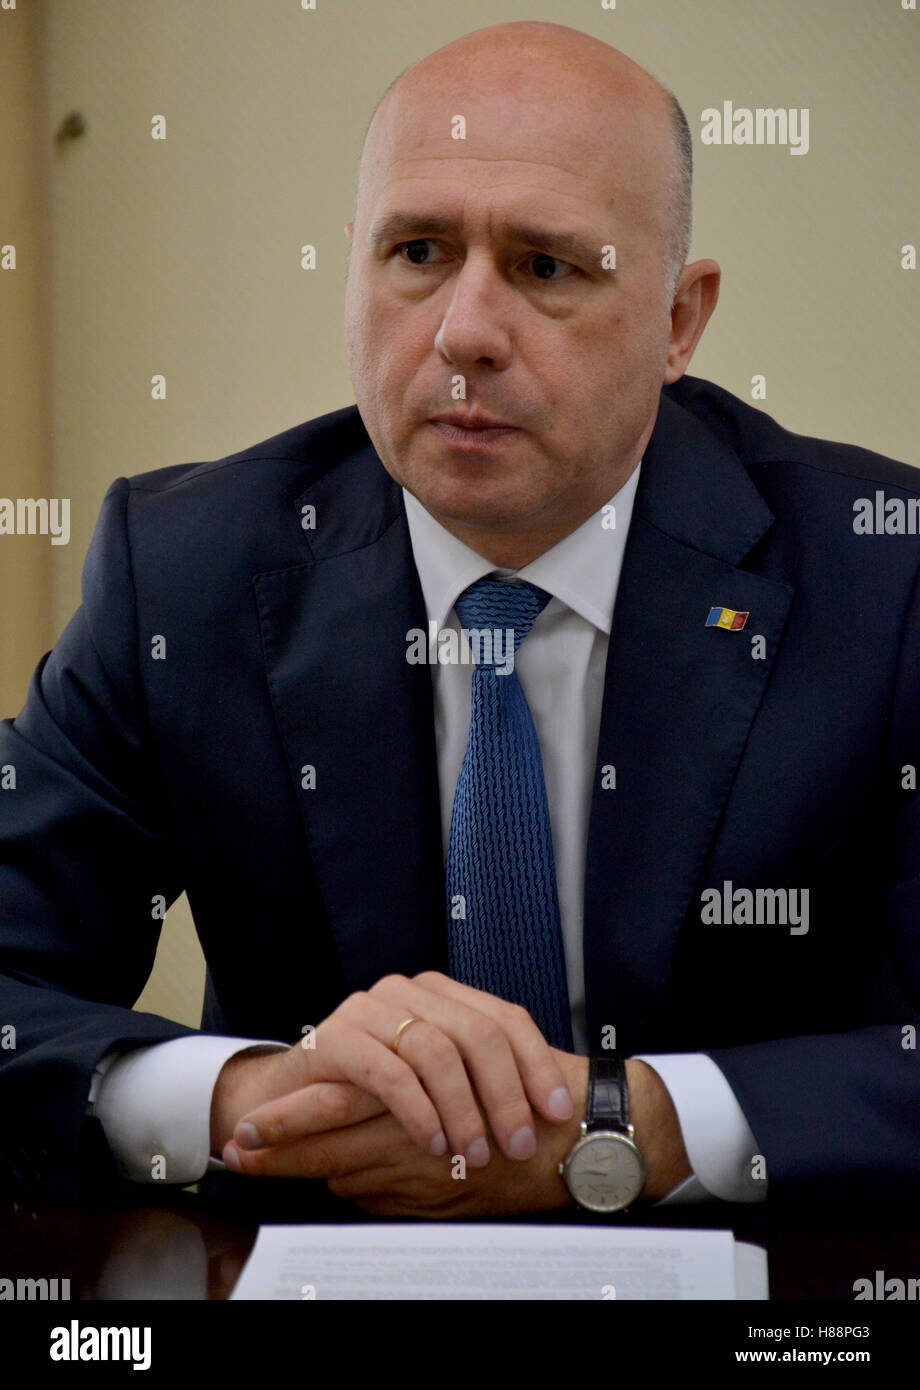 Chisinau, Moldova. October 6th 2016 - Prime minister of Moldova, Pavel Filip during the meeting - Stock Image